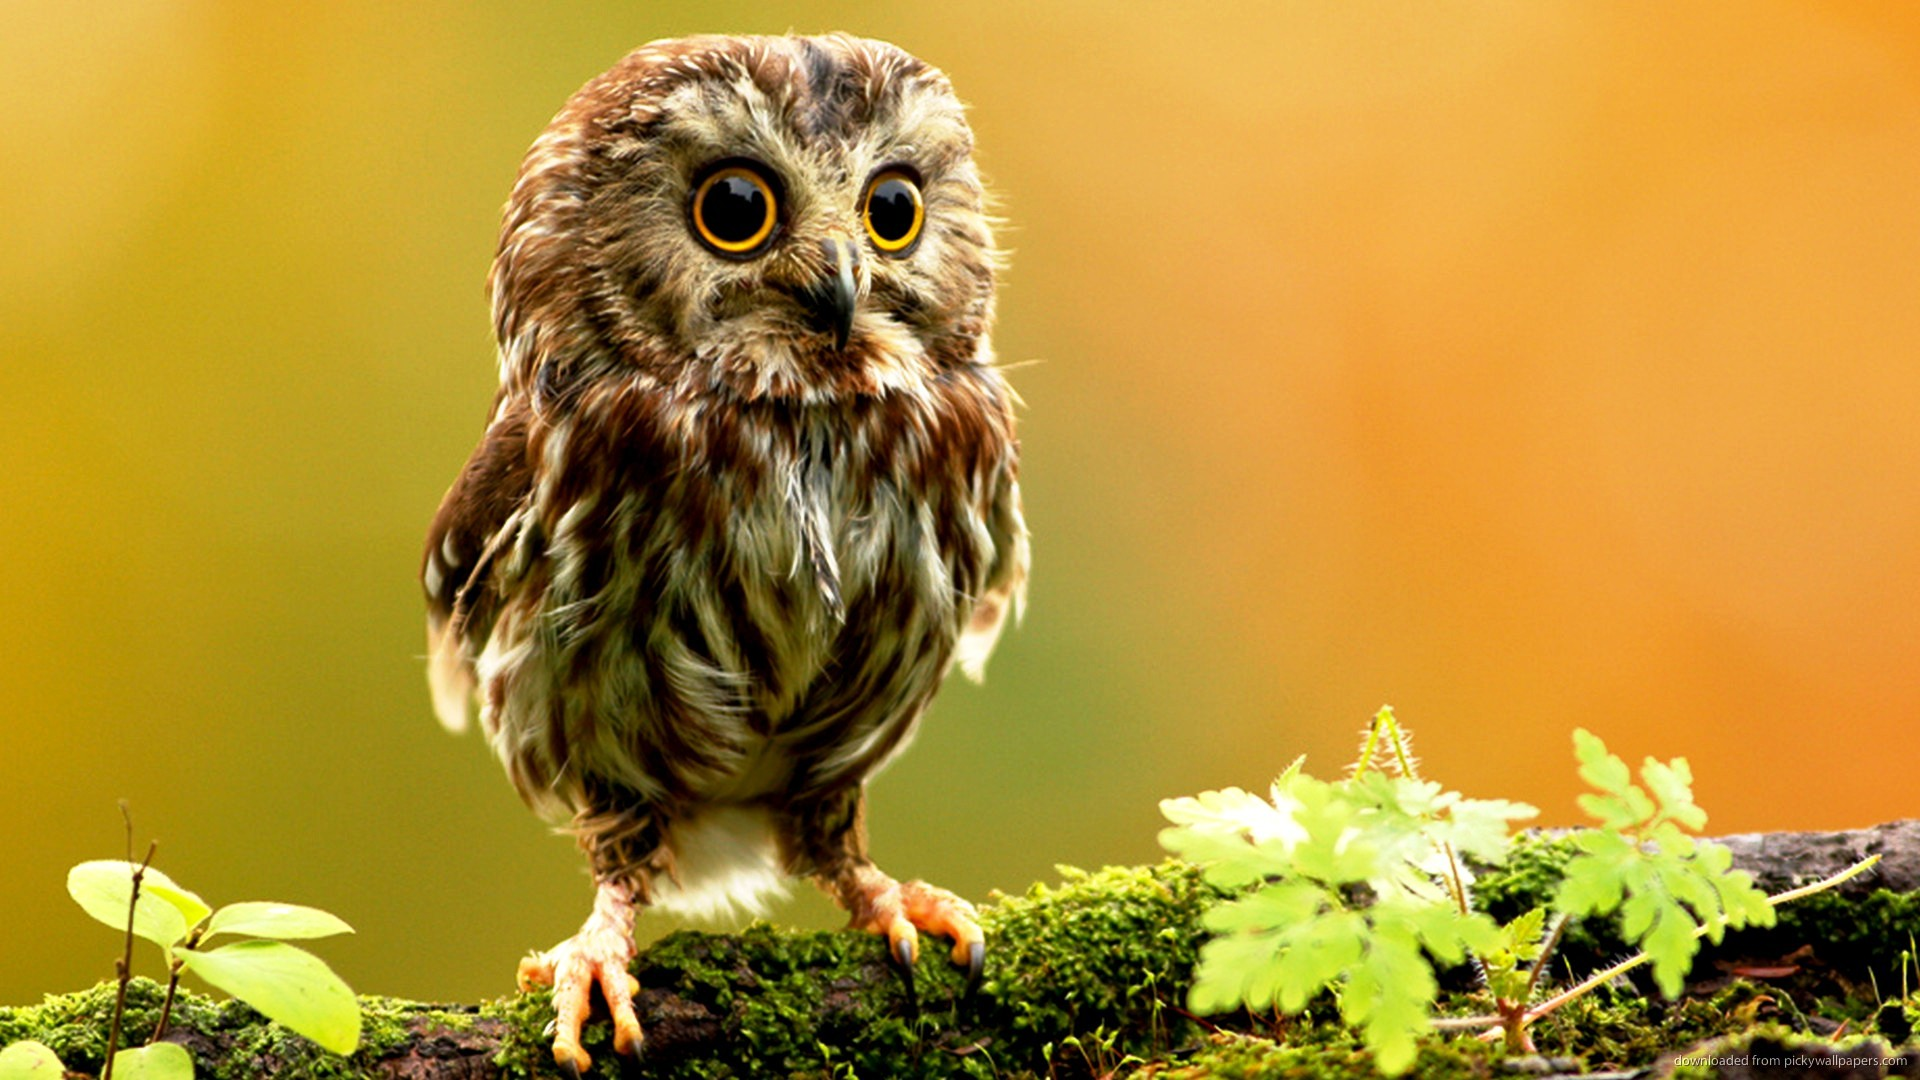 Cute Animal Wallpapers For Desktop Little Owl Creating Attractive Screen  Look With Cute